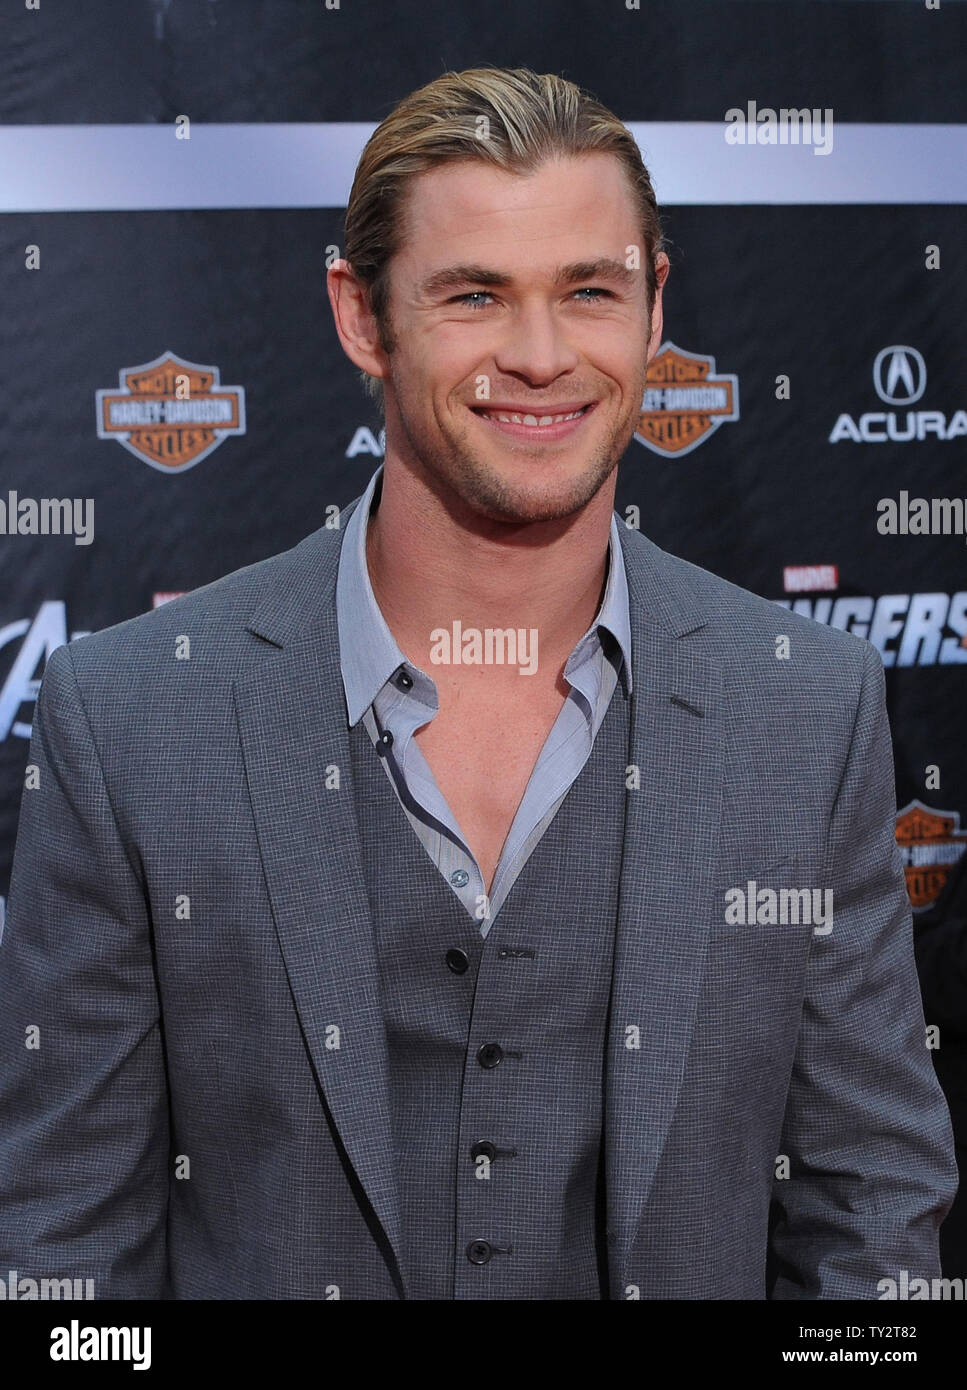 """Chris Hemsworth, a cast member in the sci-fi motion picture """"The Avengers"""", attends the premiere of the film at the El CapitanTheatre in the Hollywood section of Los Angeles on April11, 2012.   UPI/Jim Ruymen Stock Photo"""